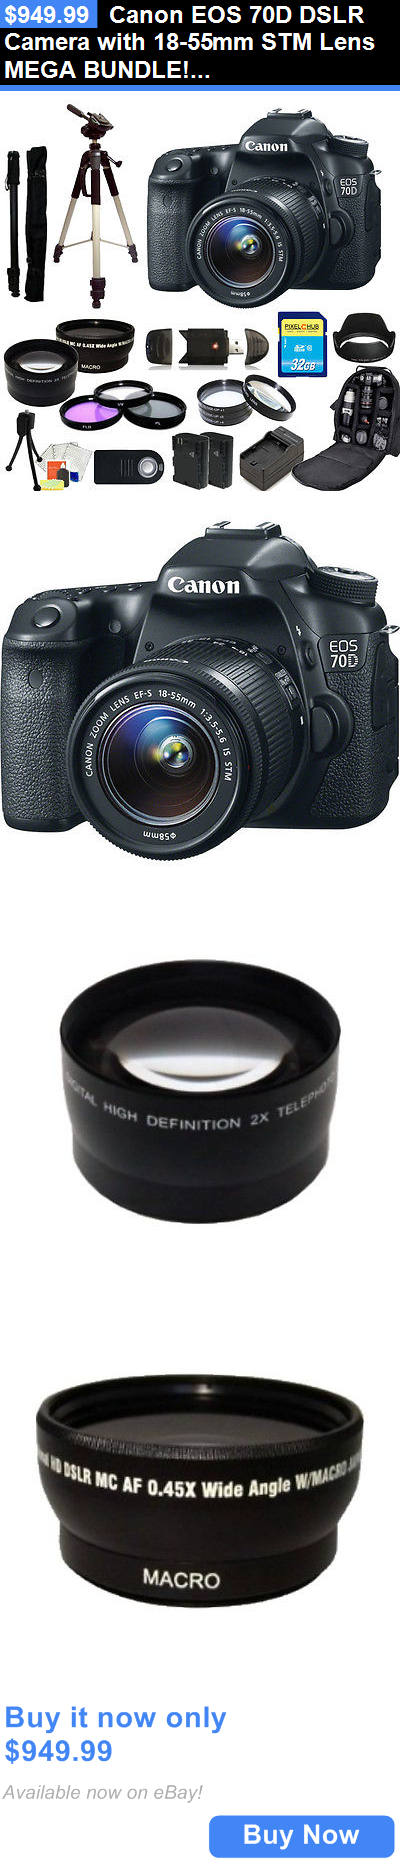 photo and video Canon Eos 70D Dslr Camera With 1855Mm Stm Lens